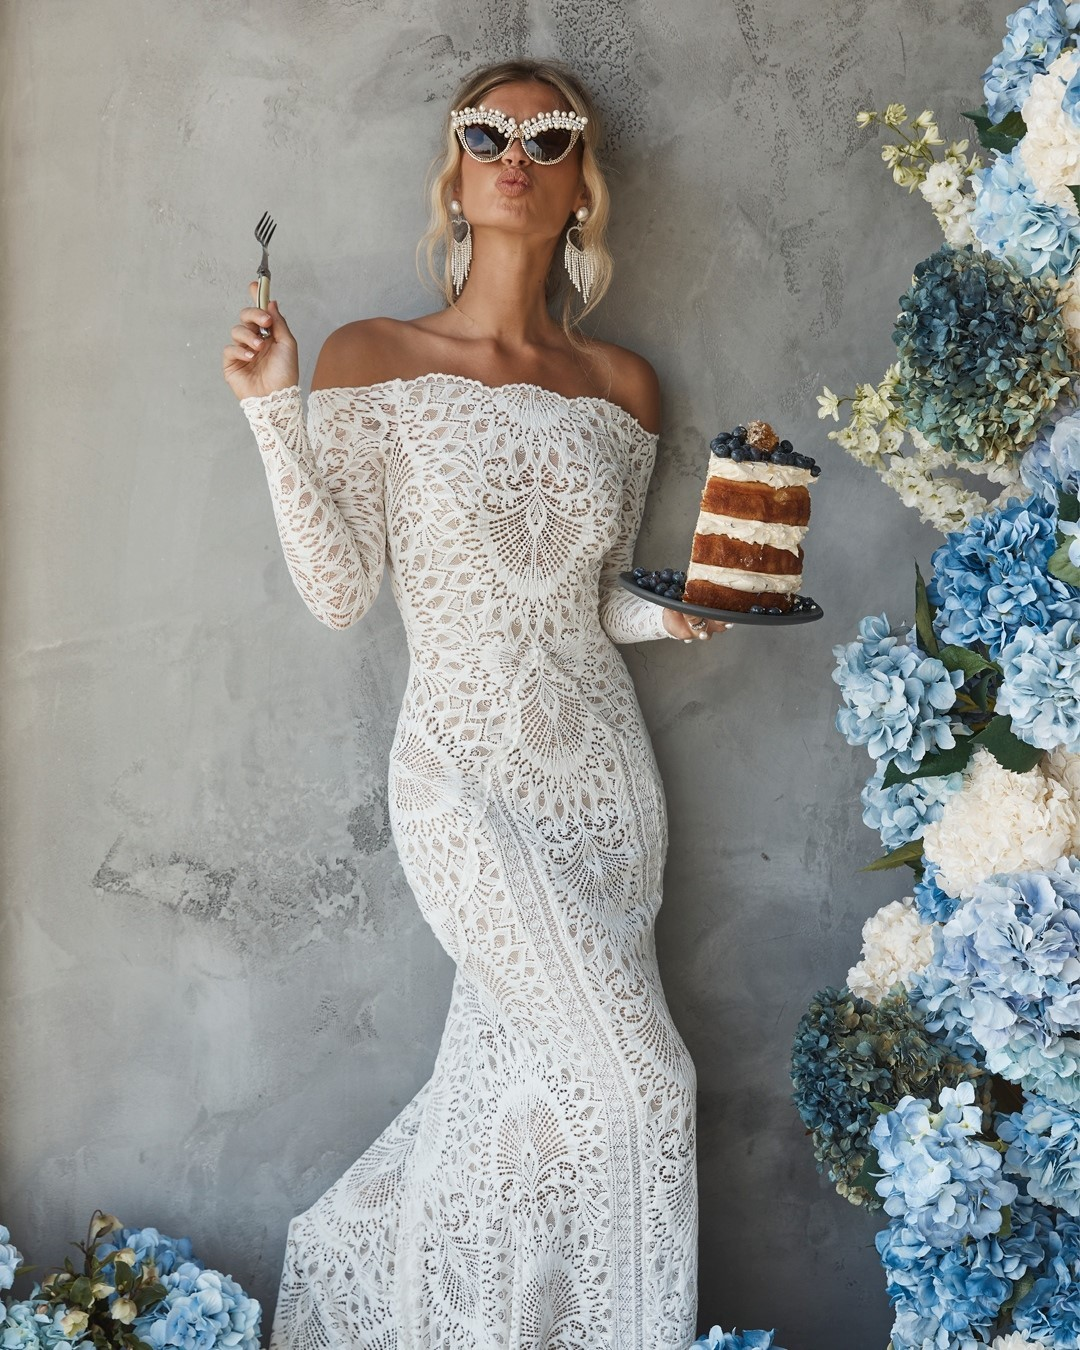 pearl sunglasses for bride in lace wedding dress by grace loves lace